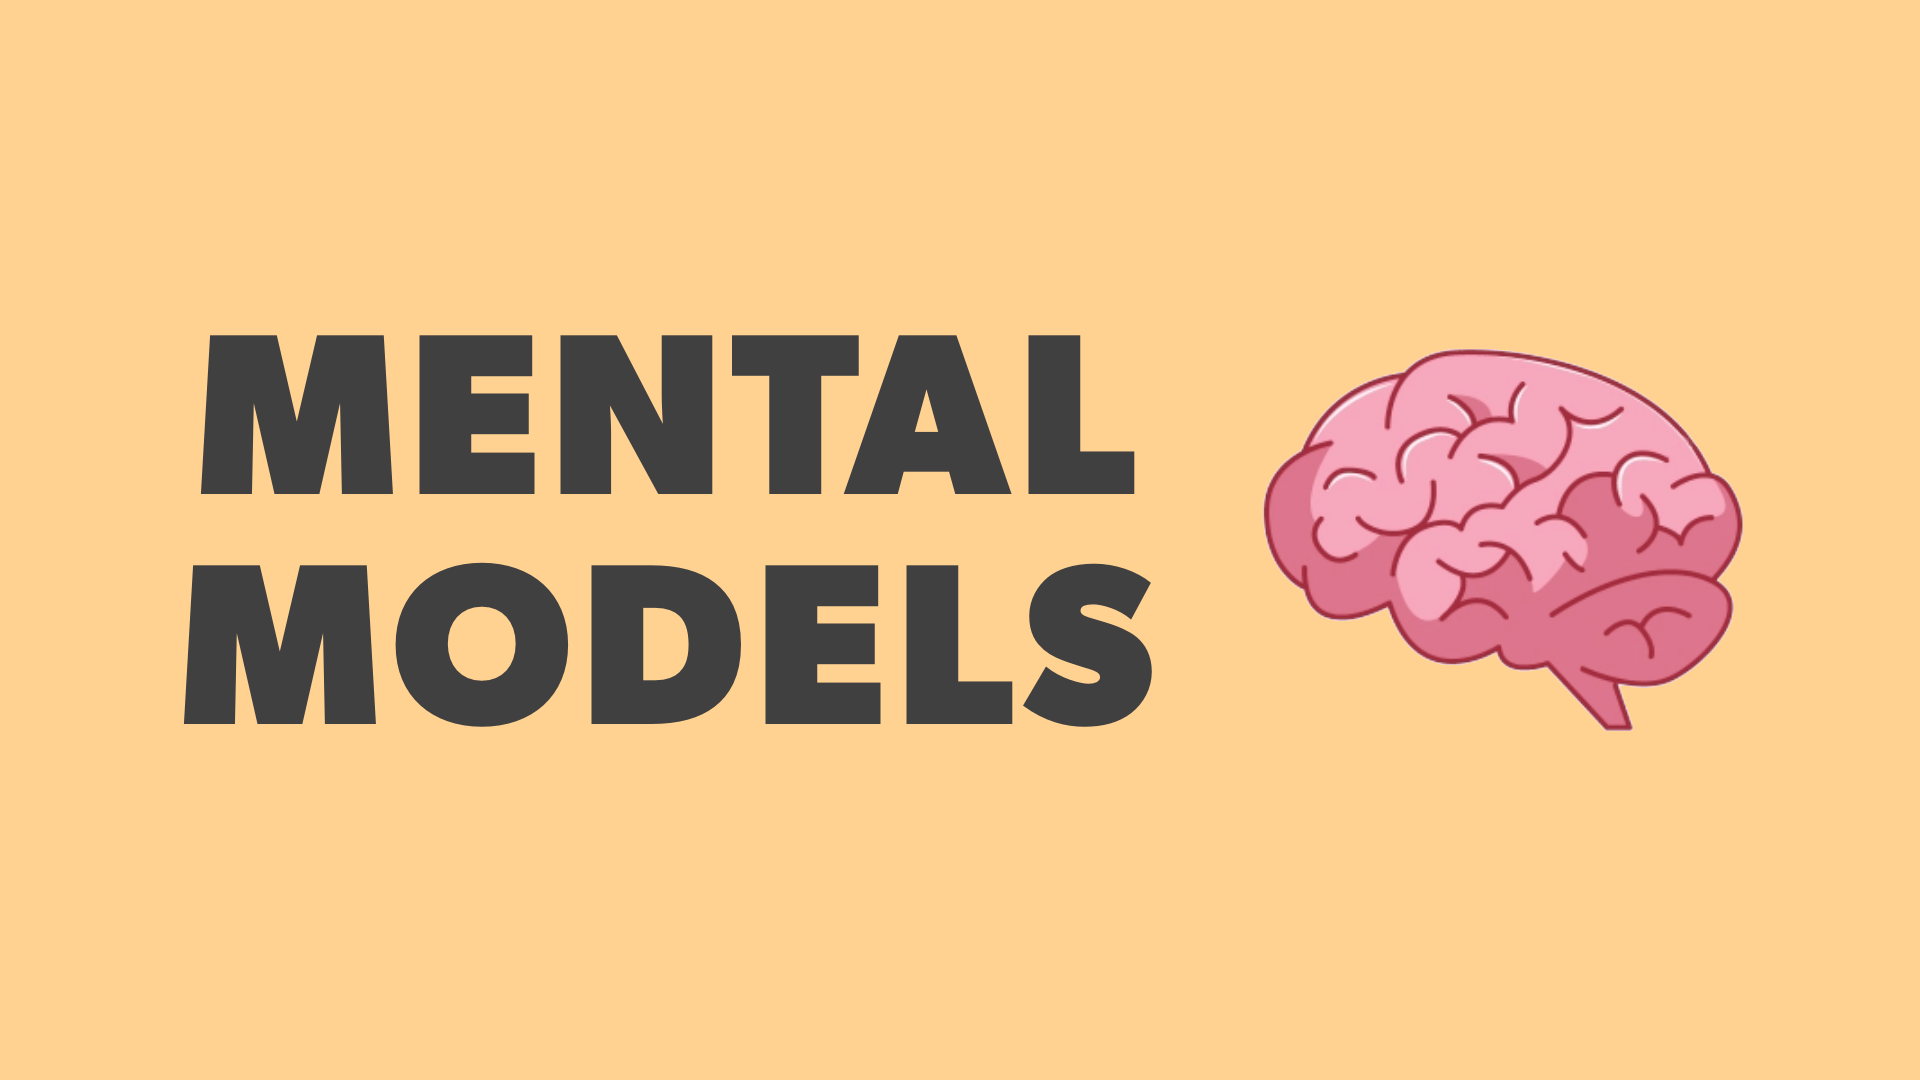 Mental Models: The Best Way to Make Better Decisions